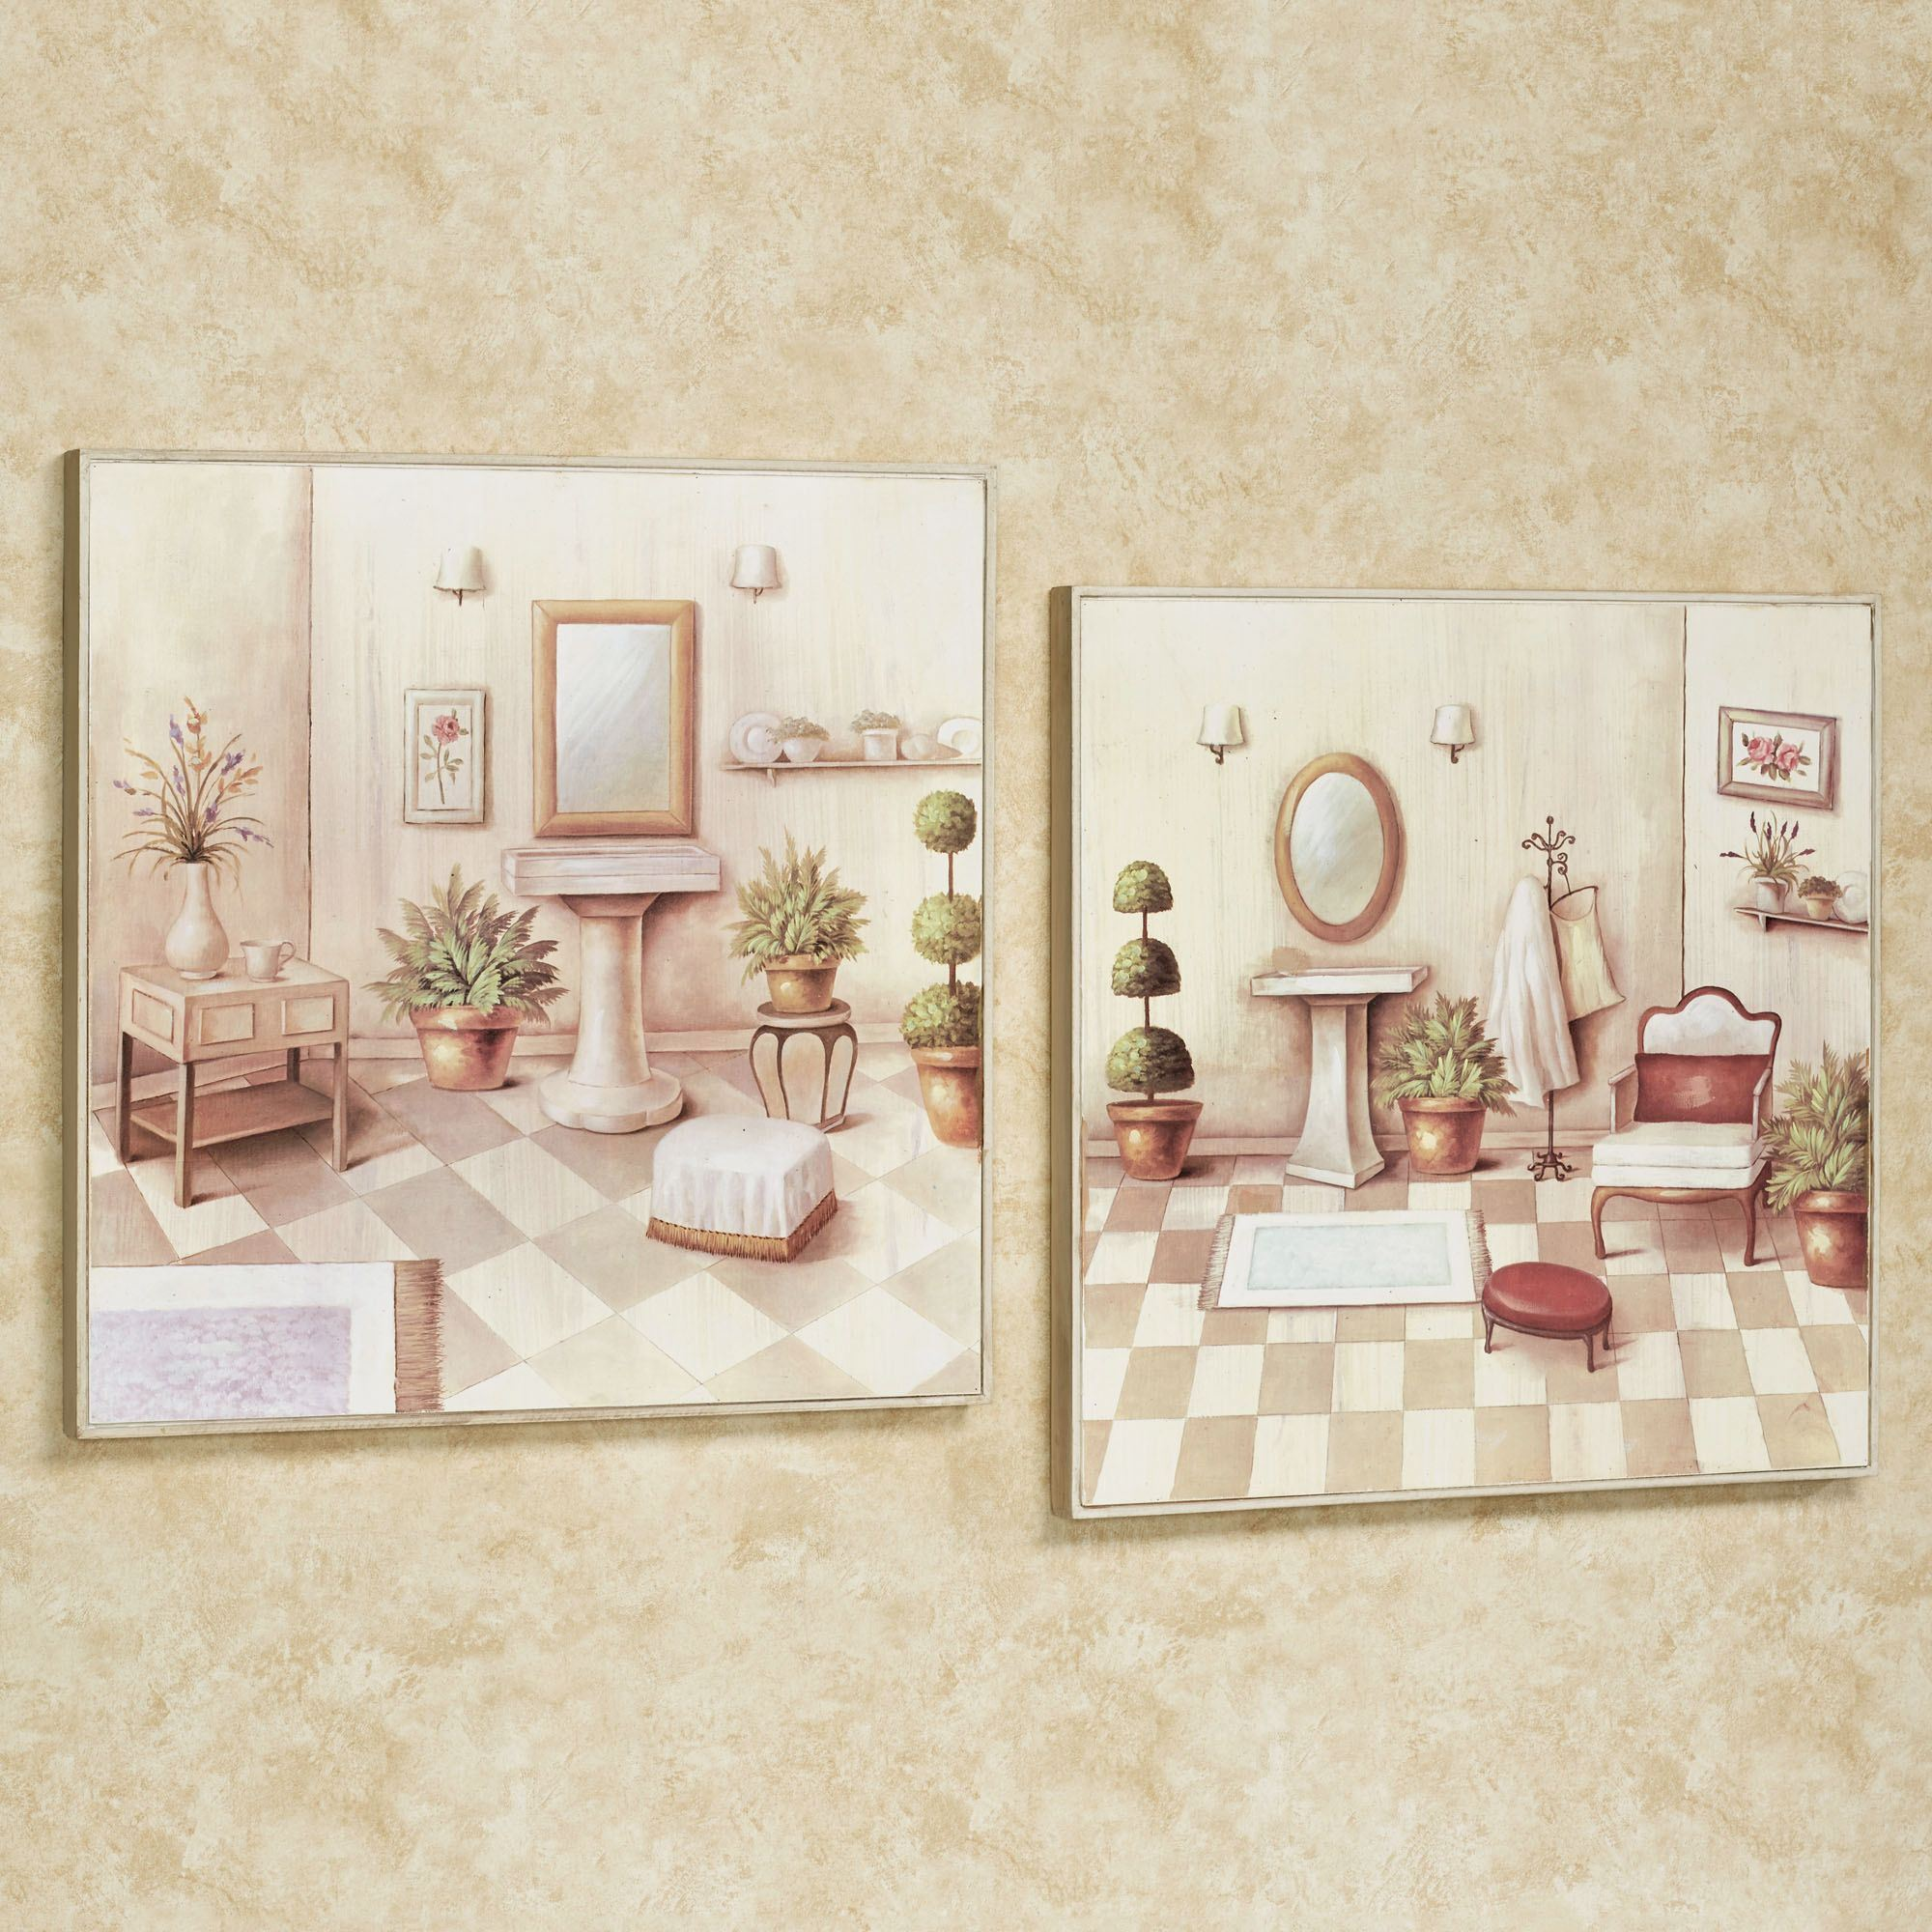 Soothing retreat bathroom scene wall art set for Spa wall decor